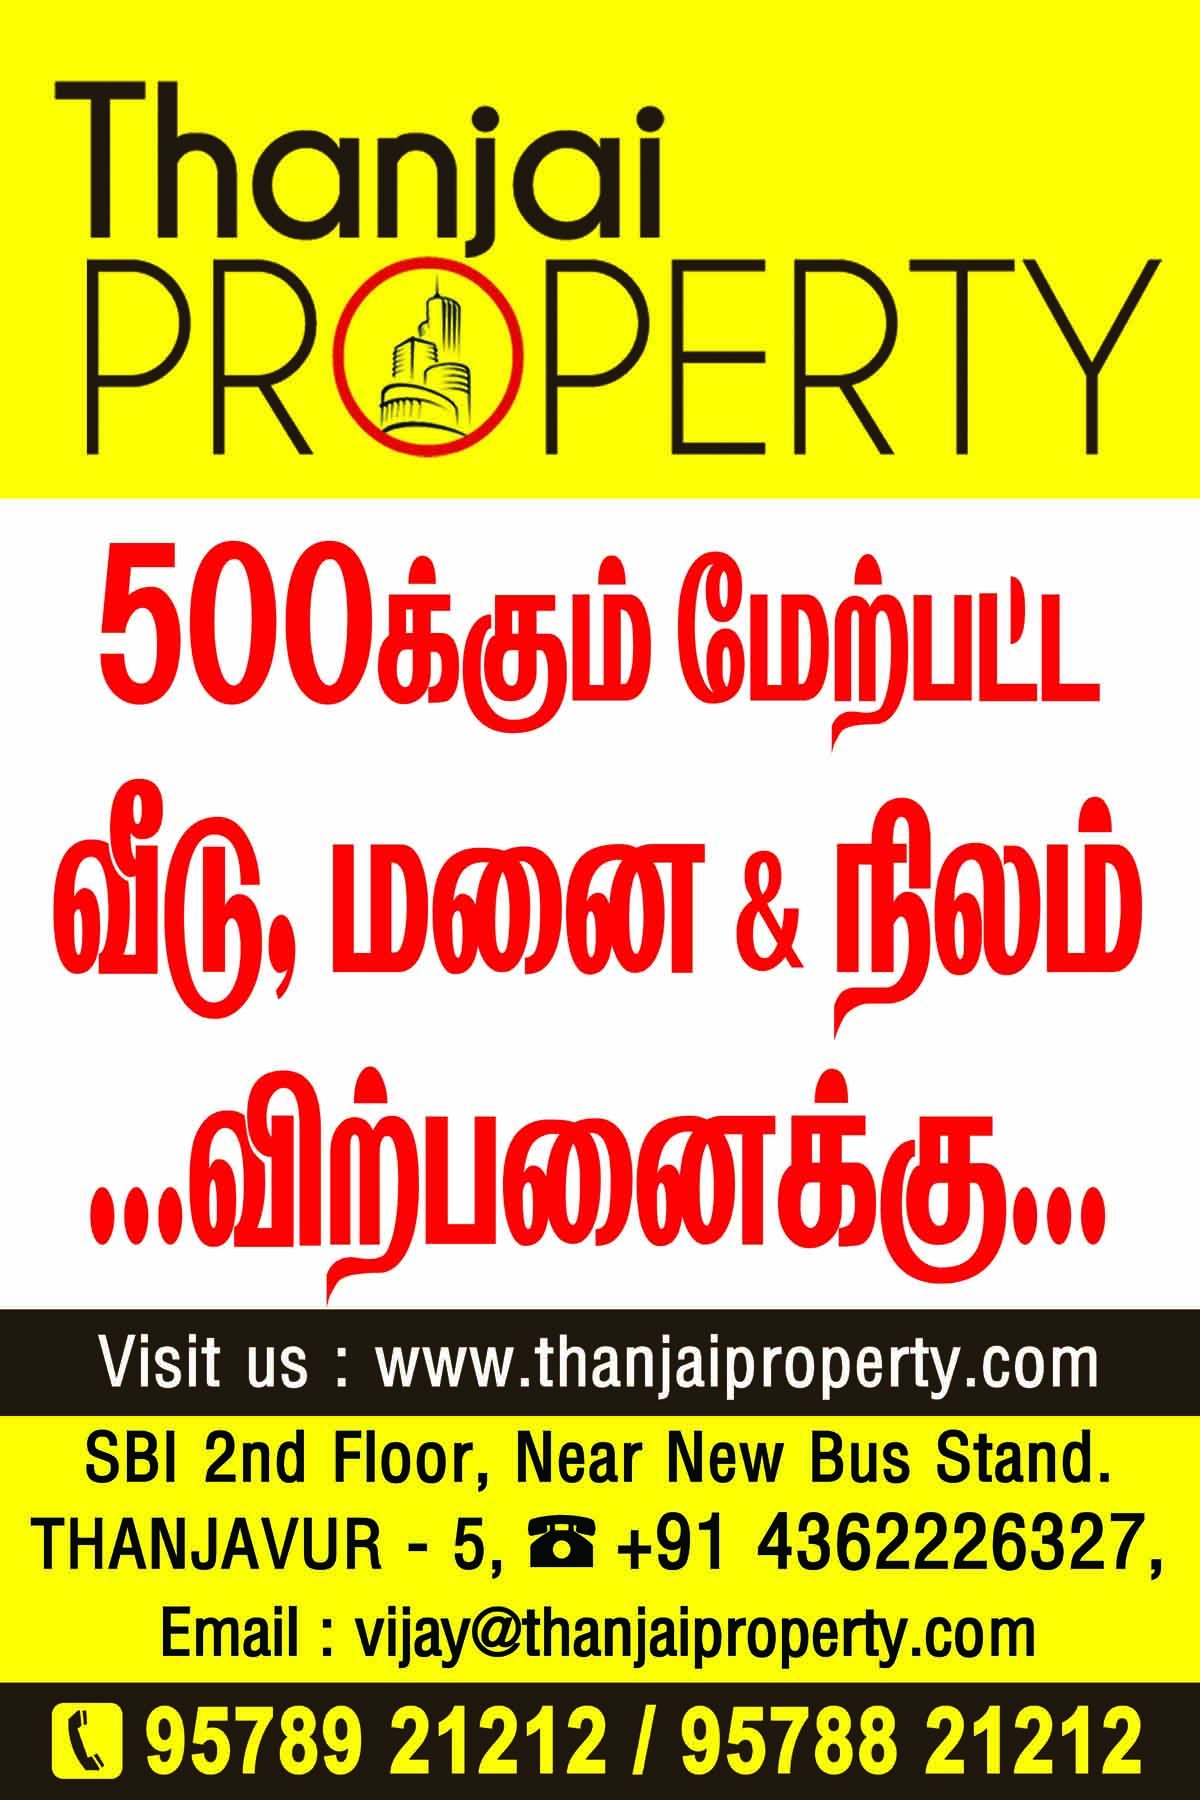 Thanjaiproperty.com